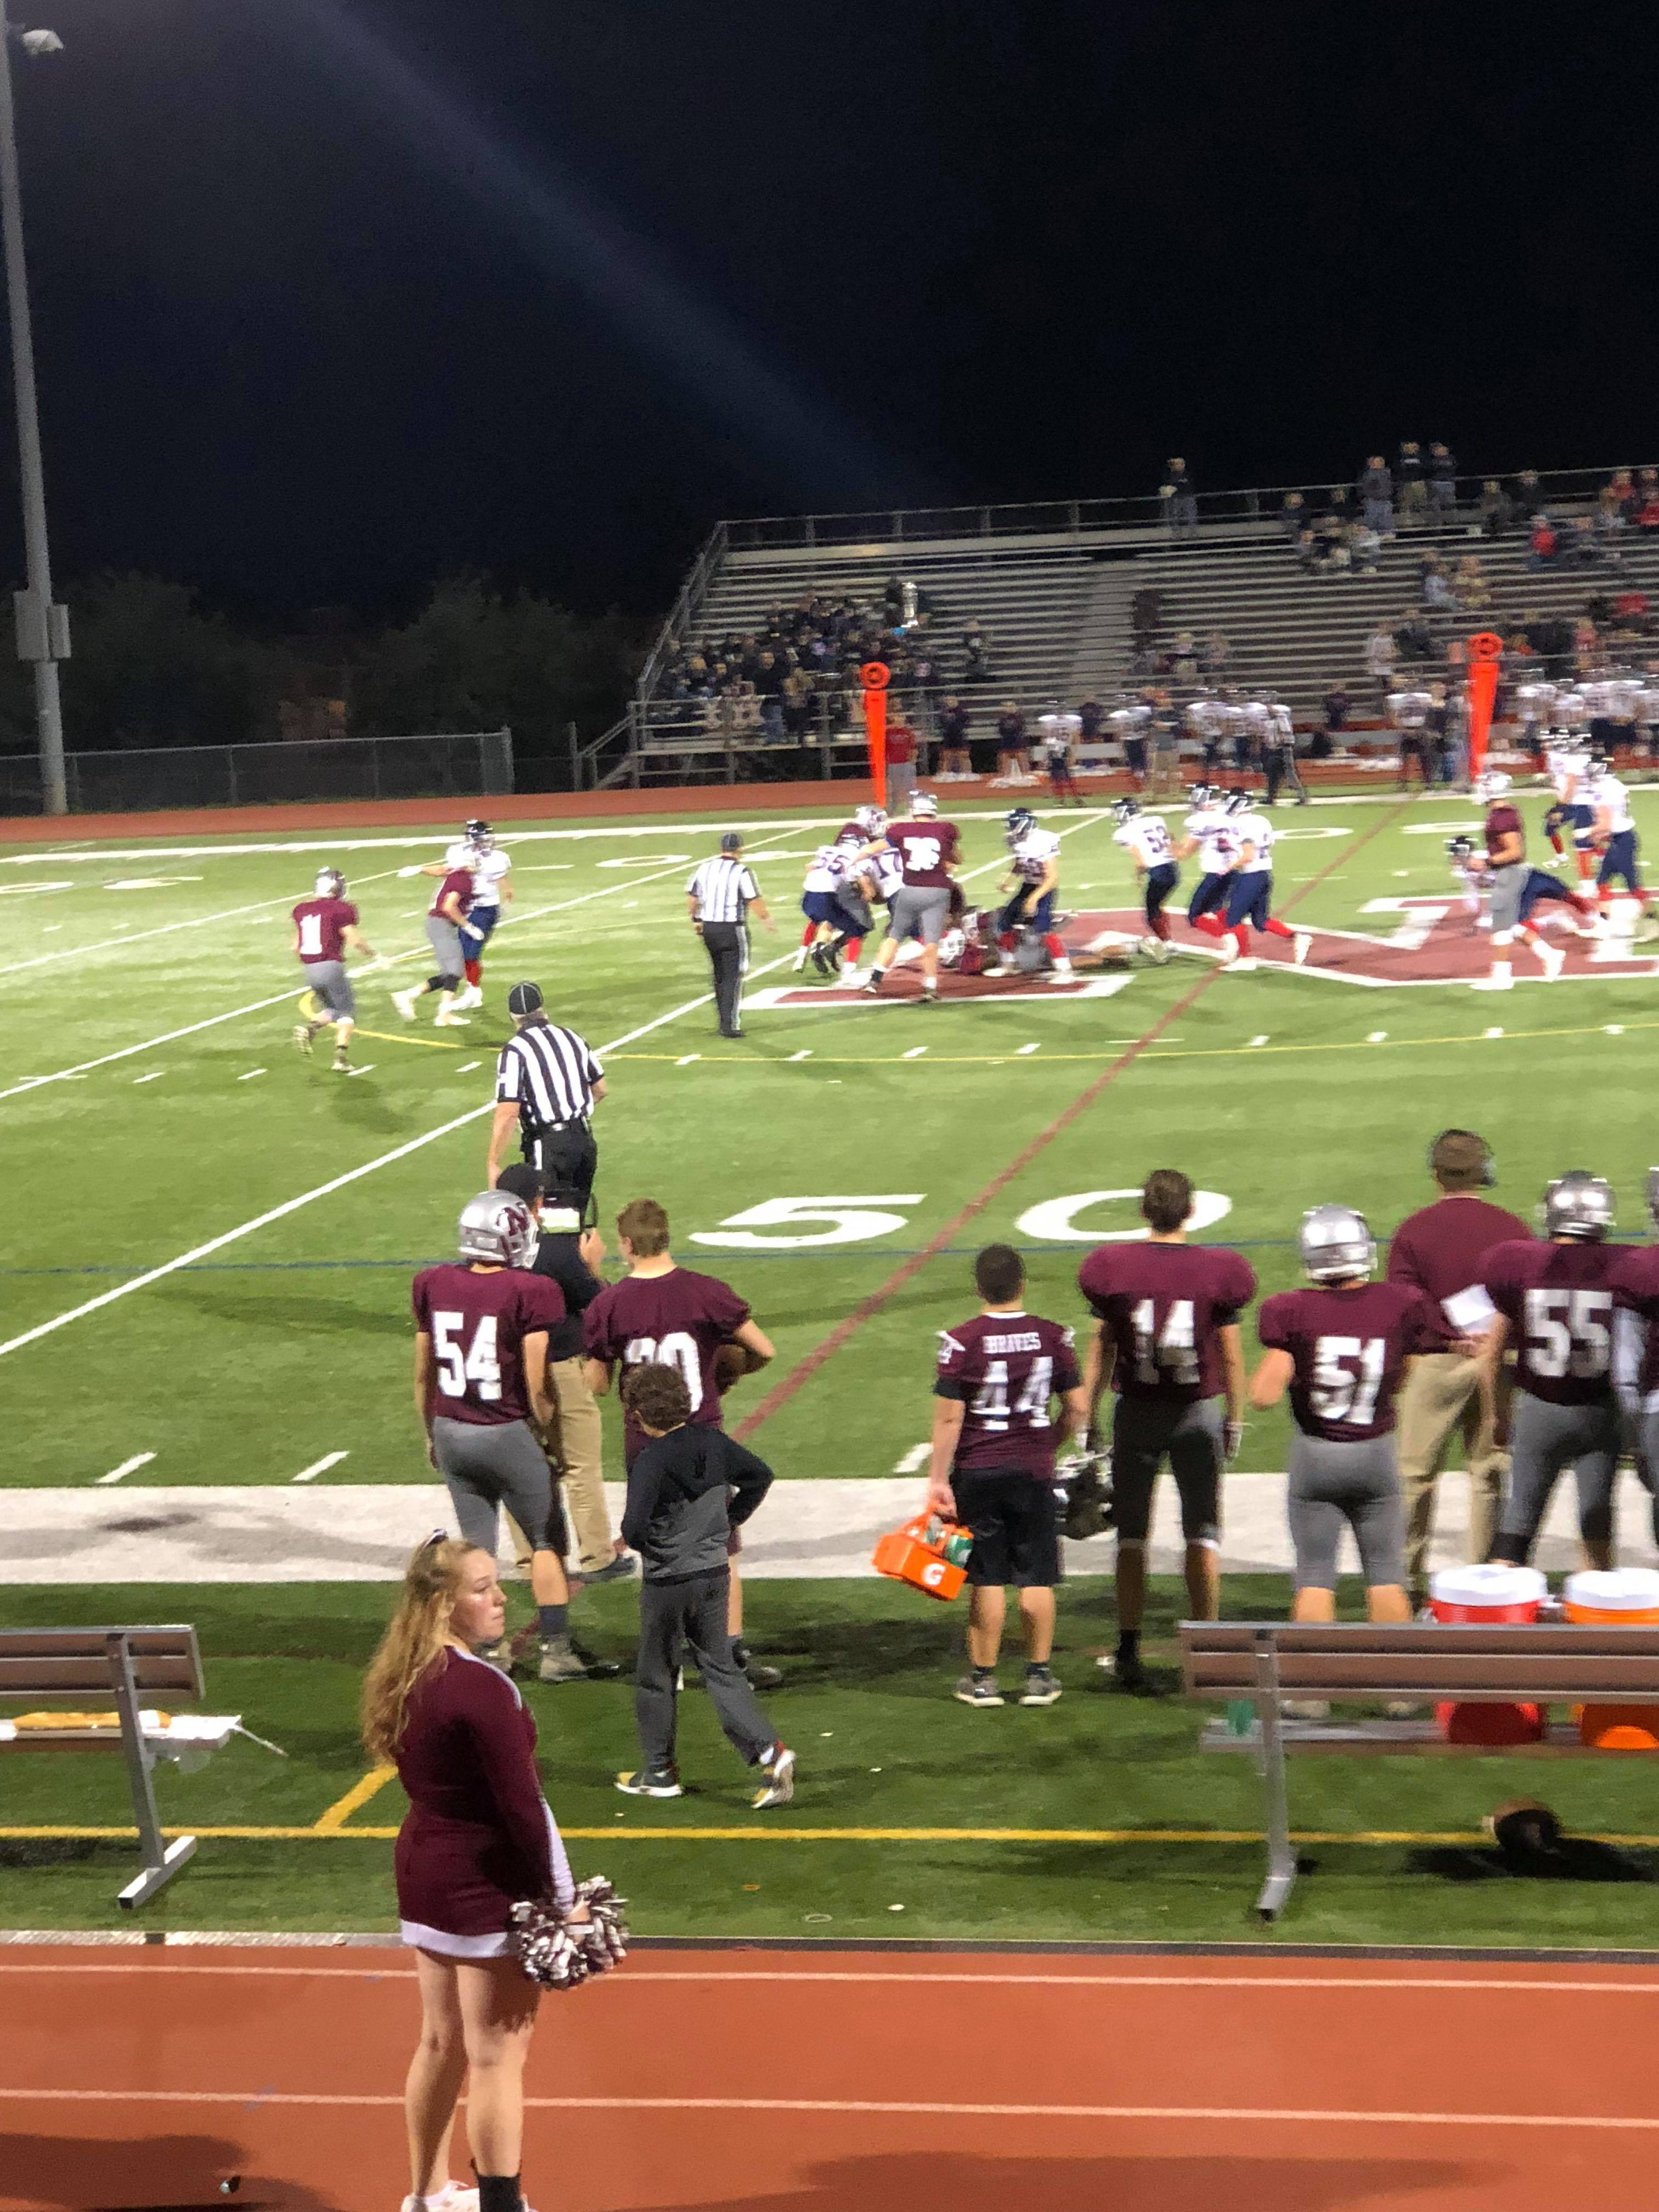 Newton Football Wins Big, Ends Game with Injury